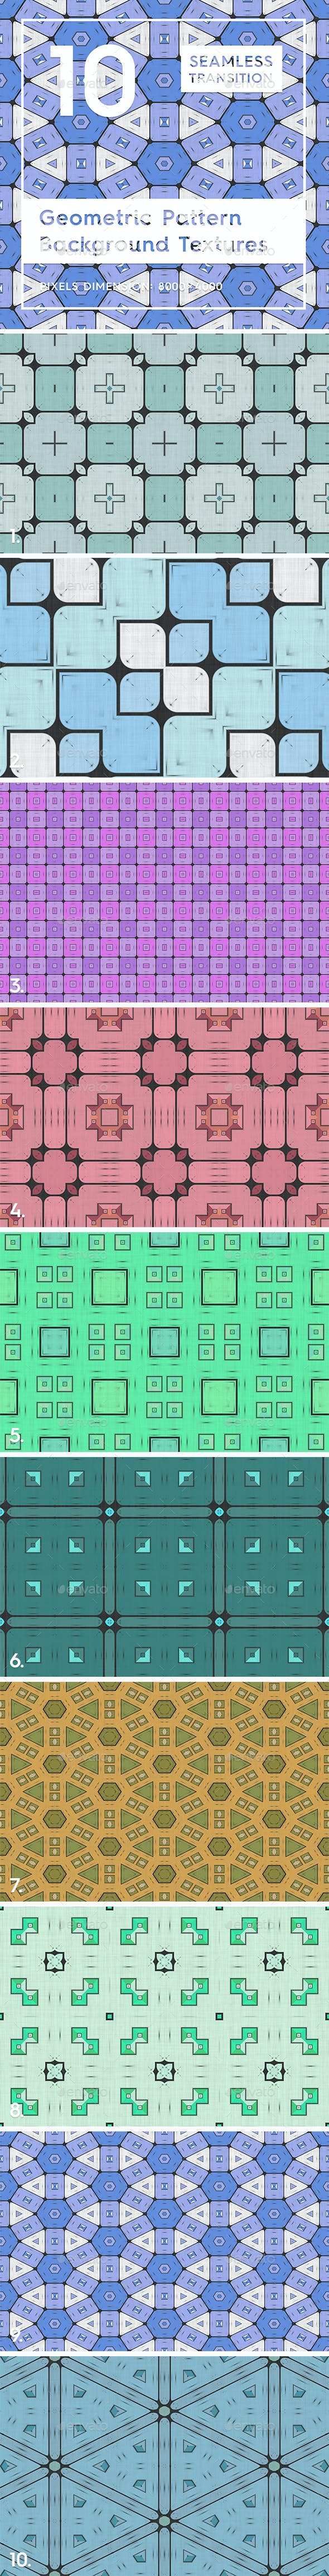 10 Geometric Pattern Backgrounds - 3DOcean Item for Sale